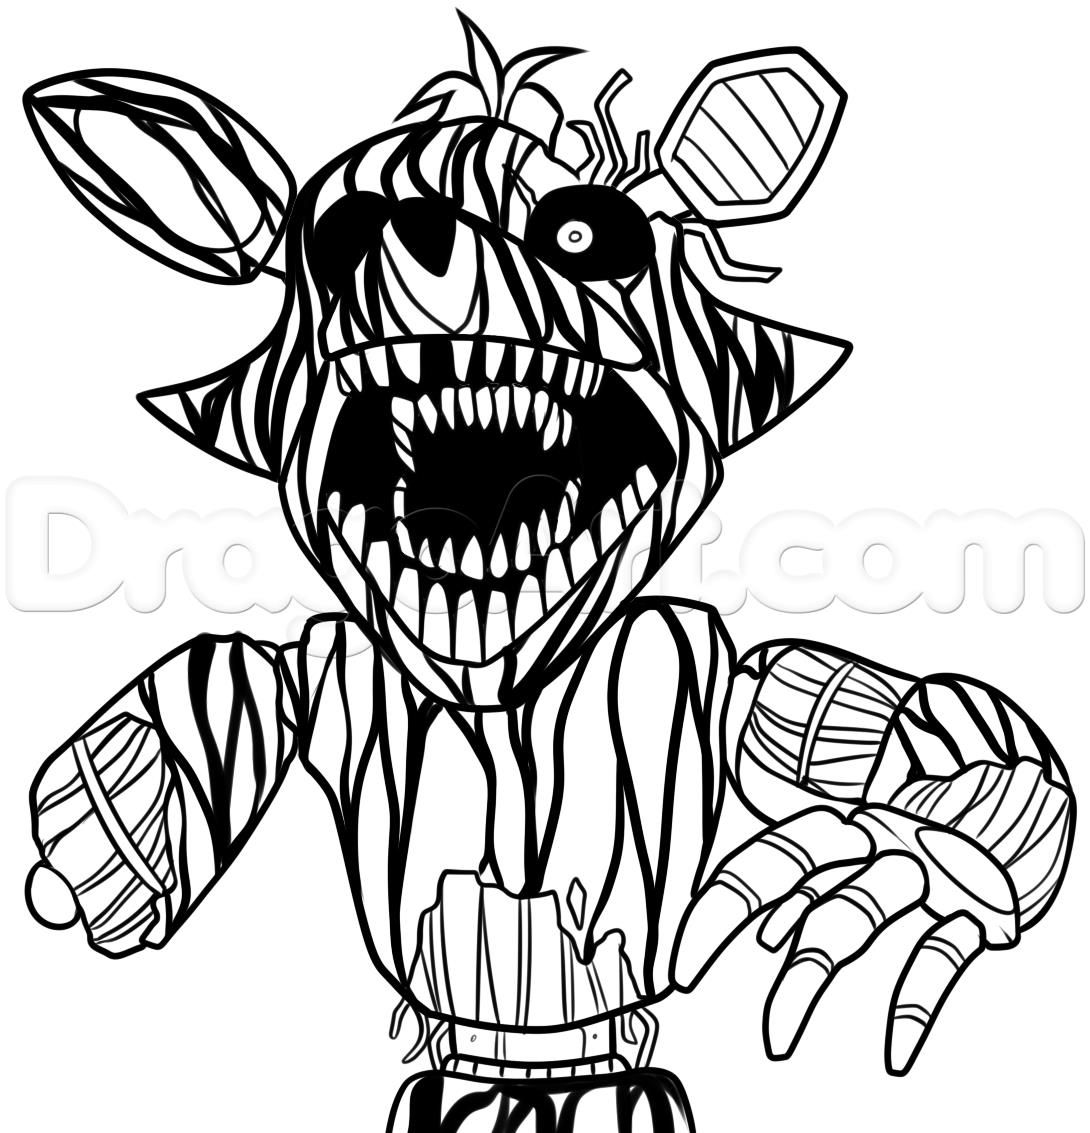 Colorings Five Nights At Freddys 4 Coloring